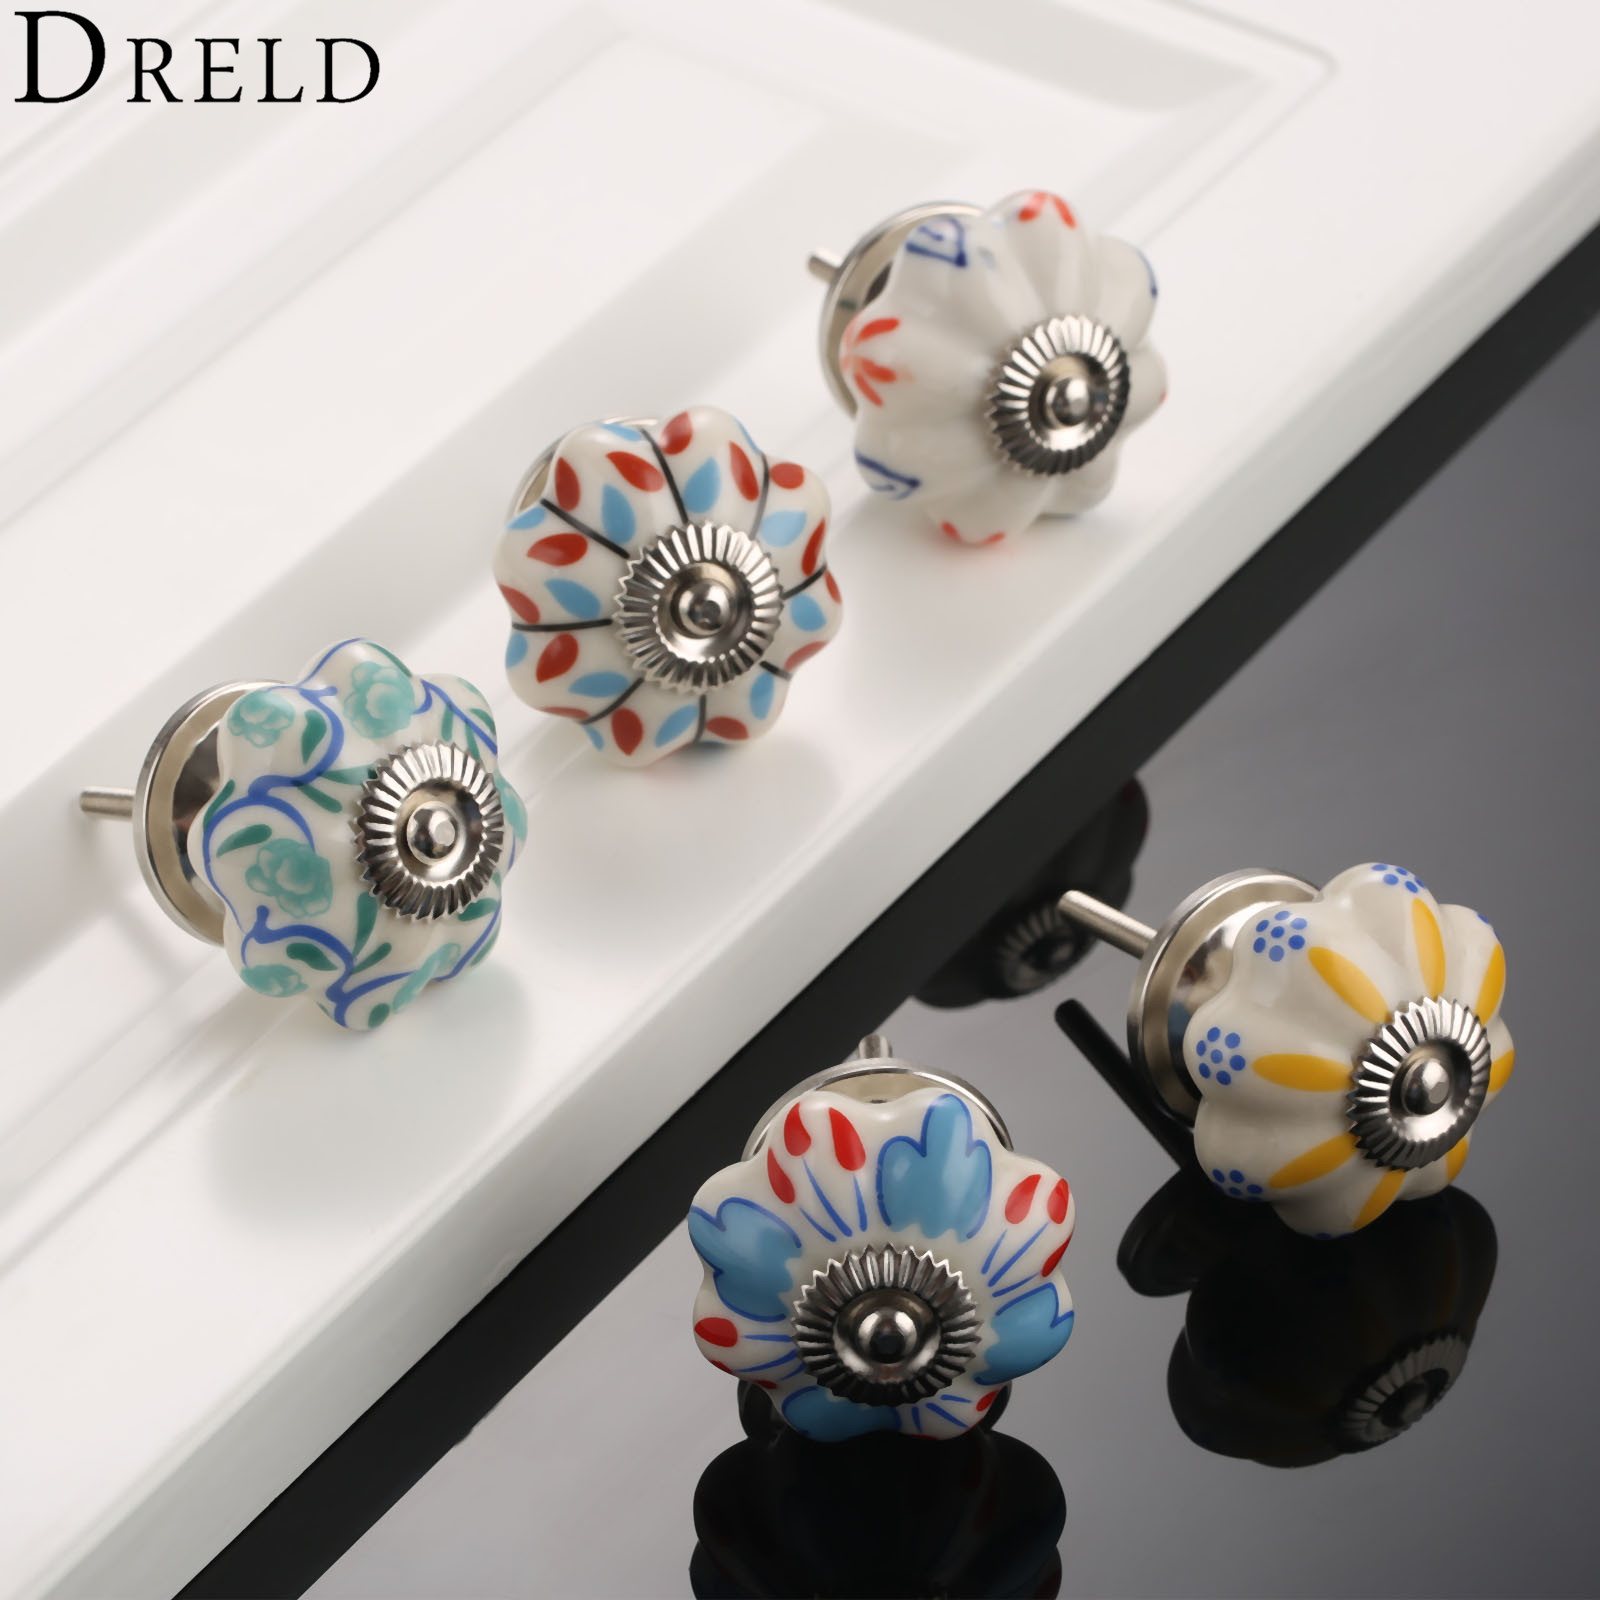 DRELD Flower Furniture Handle Ceramic Cupboard Drawer Knobs and Handles Knobs Handle Kitchen Door Pull Handle Furniture Hardware